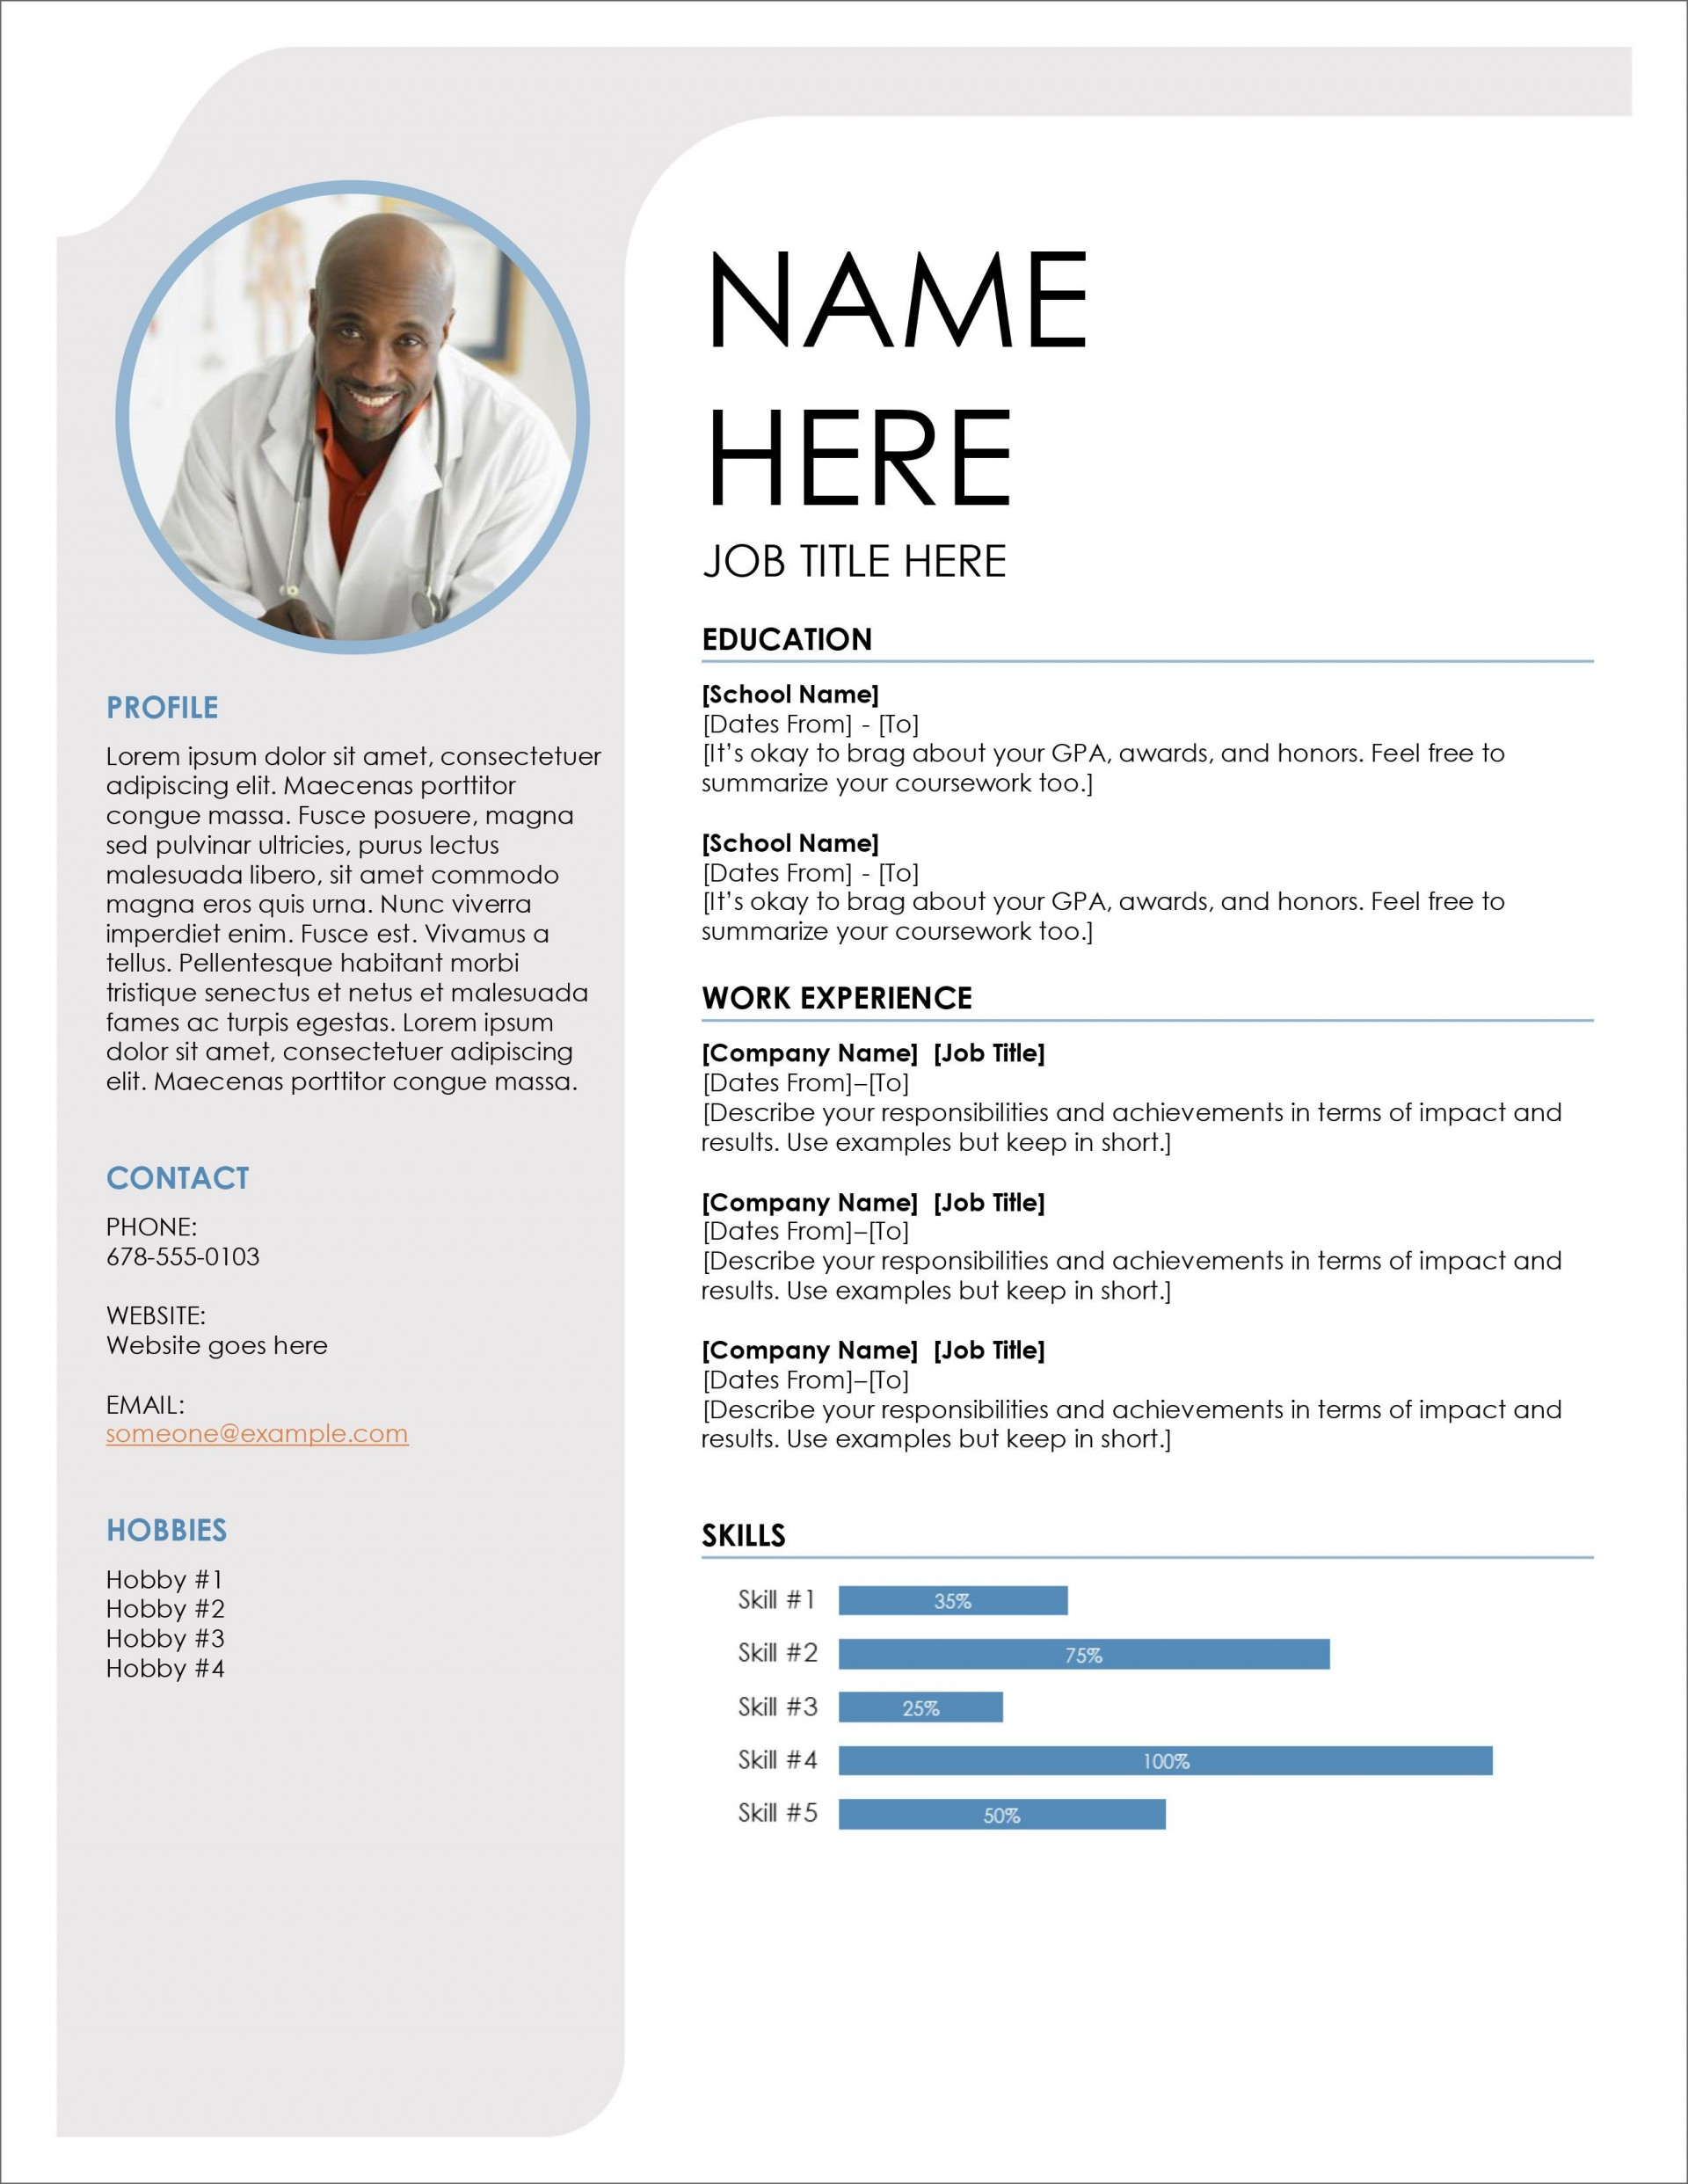 009 Amazing Resume Template Free Word Download Example  Cv With Photo Malaysia Australia1920